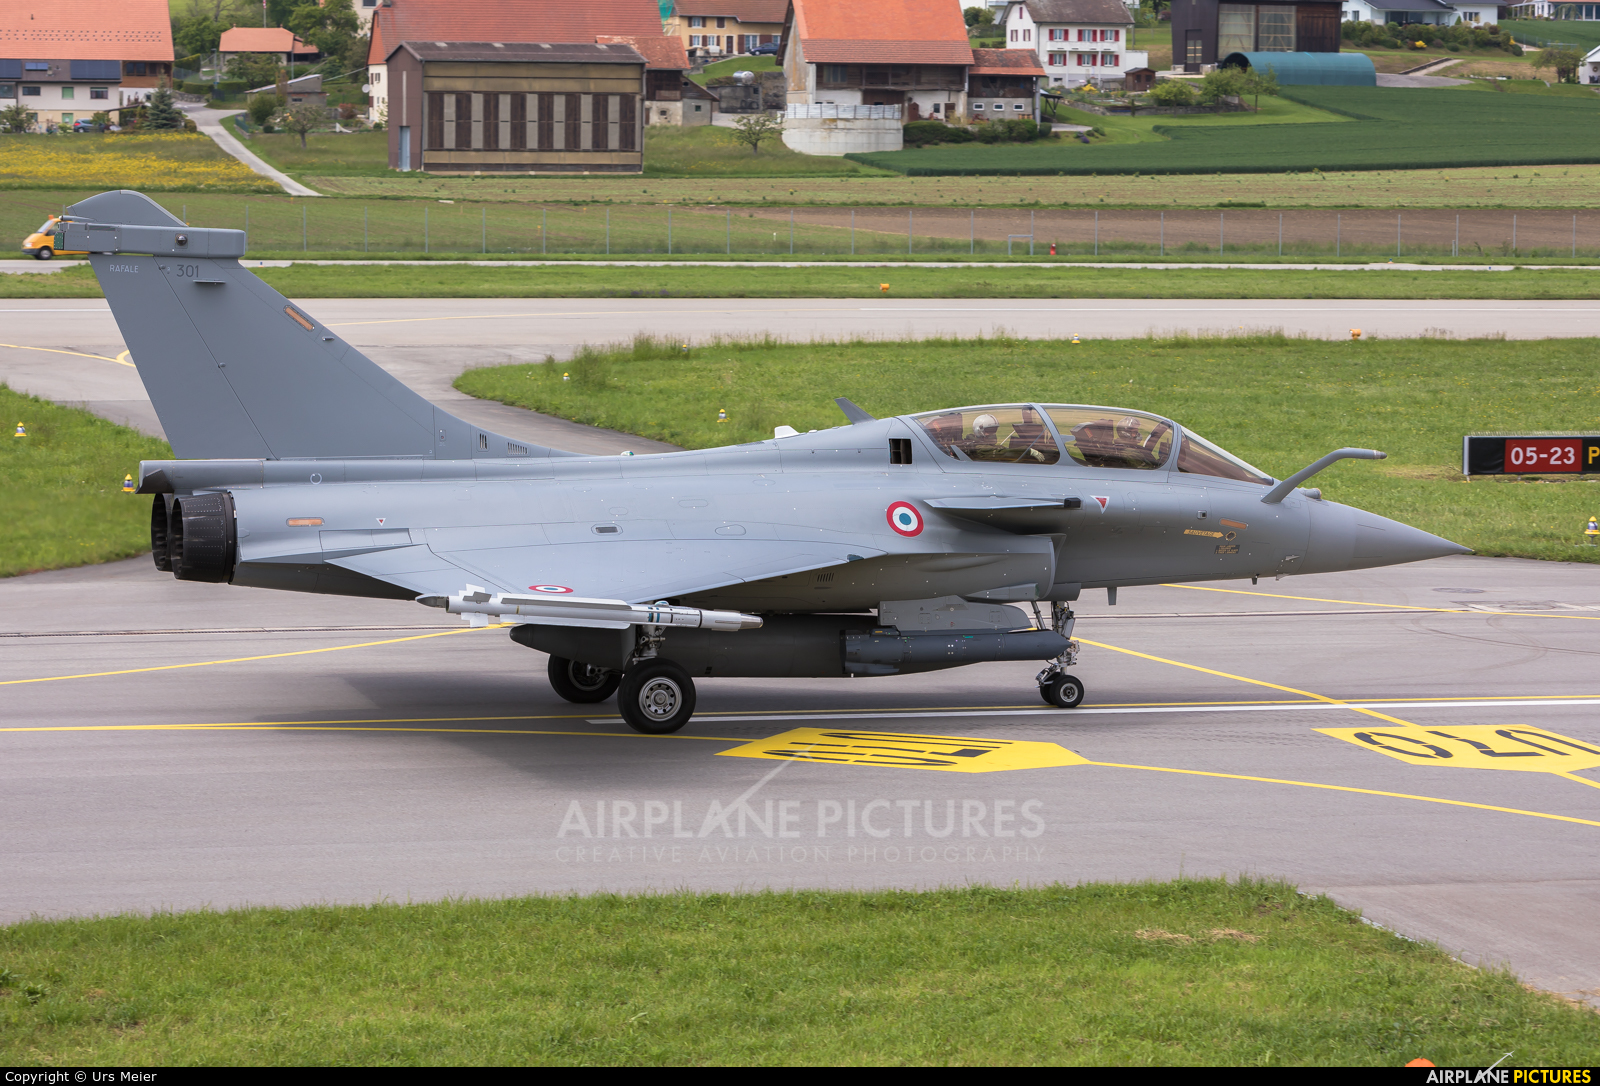 France - Air Force 301 aircraft at Payerne